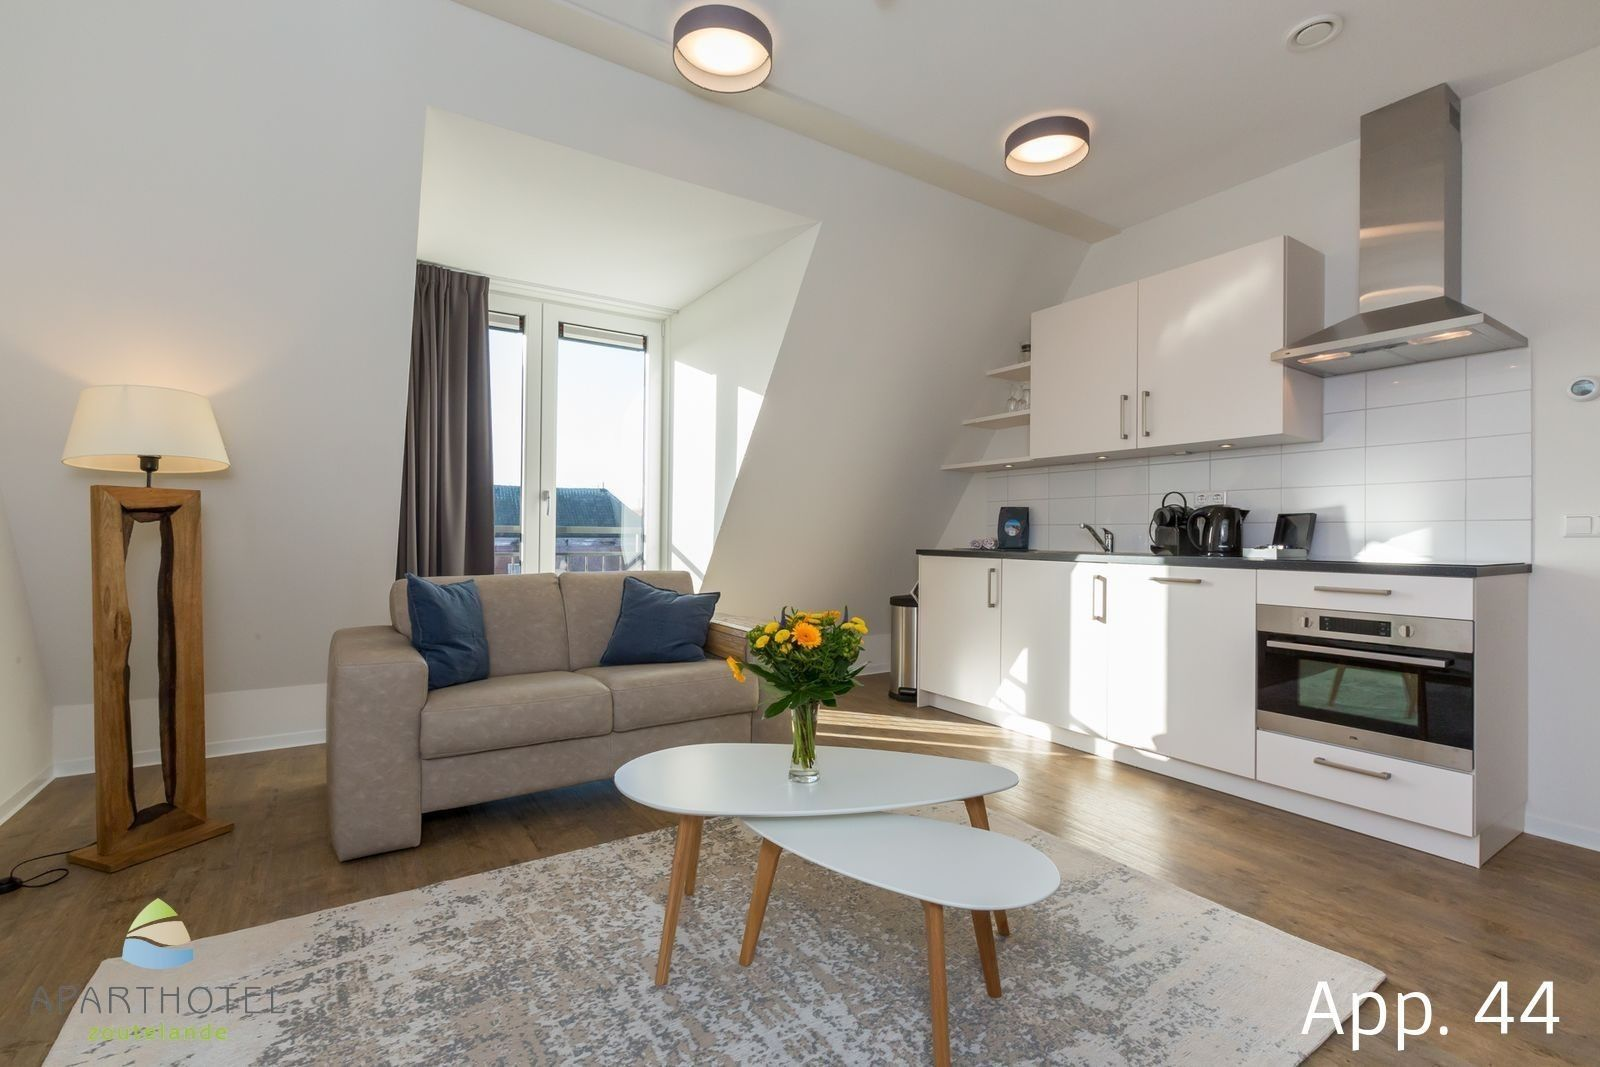 Luxuriöses Appartement Comfort für 2 Personen